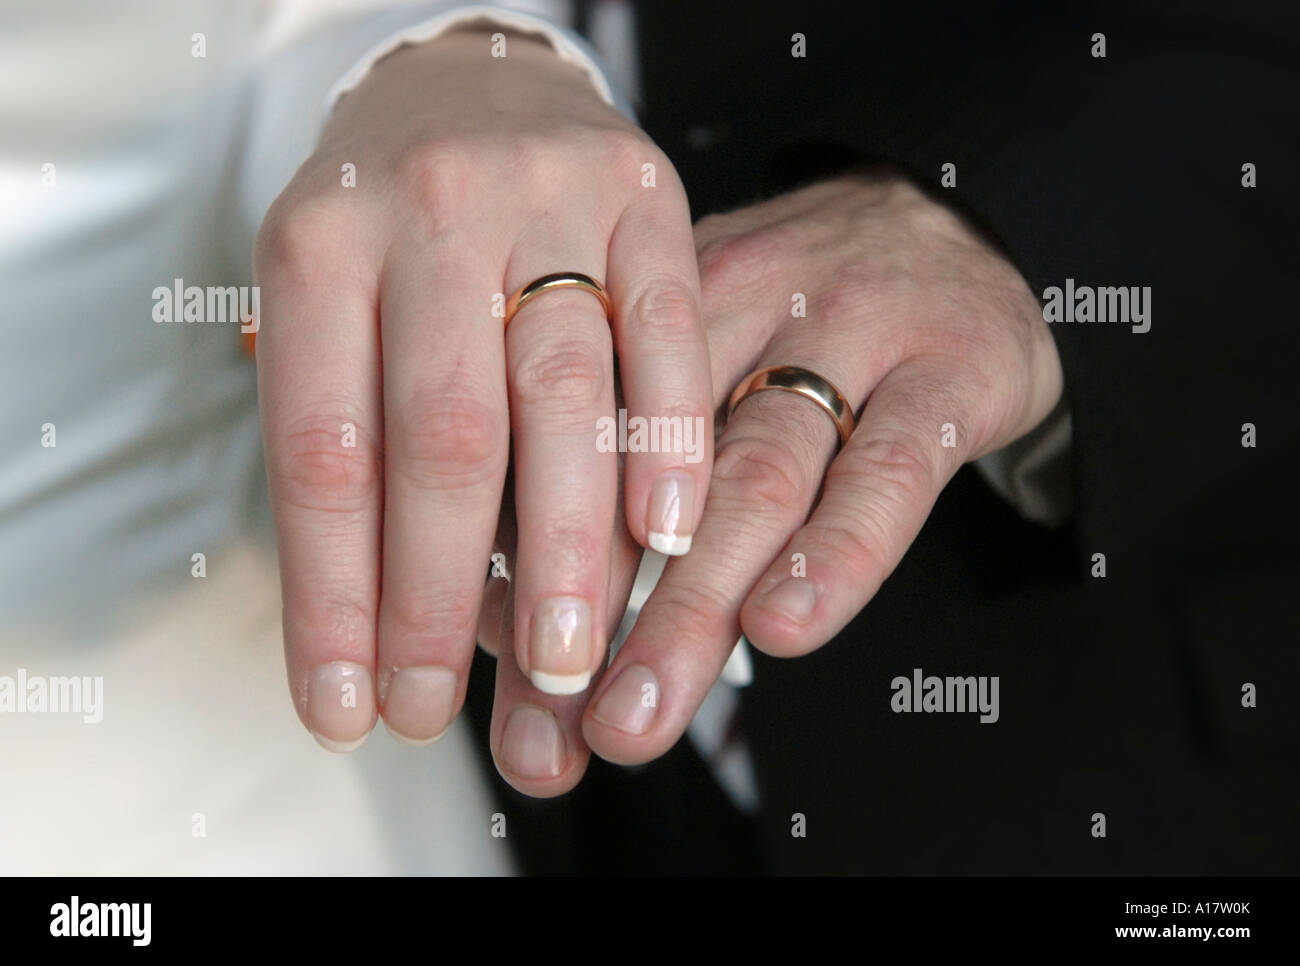 A couple s hands wearing wedding rings Stock Photo: 10172178 - Alamy